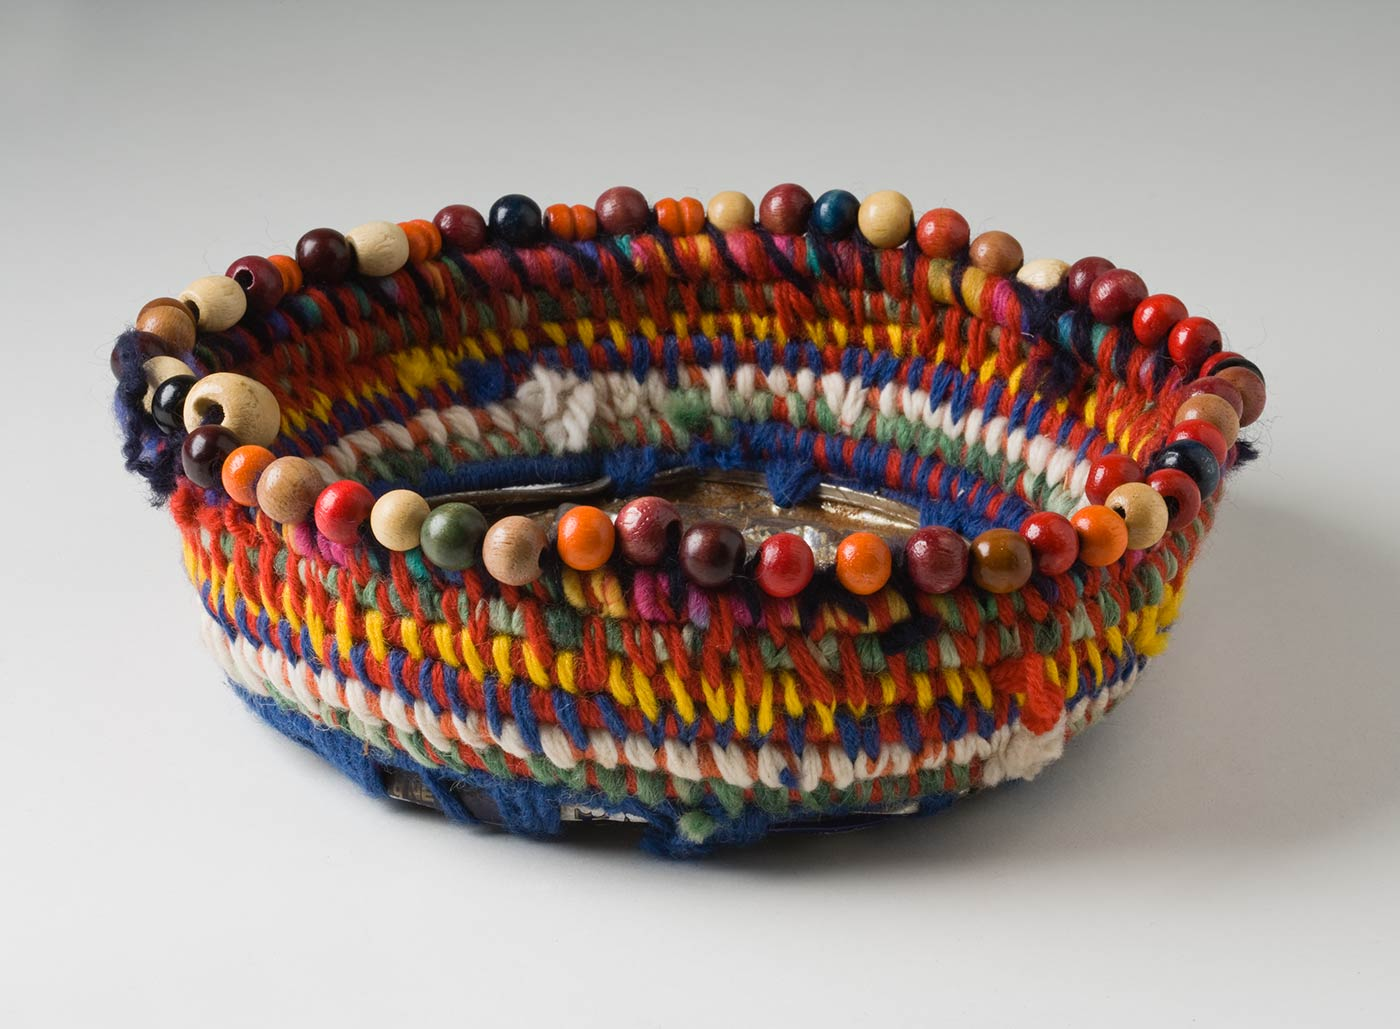 A shallow circular coiled multicoloured yarn and plant fibre basket with metal base and bead trim. The base is made of a 'Fray Bento / Steak and Kidney Pie' tin that has been unevenly flattened and shows blackening from heat. This is attached to the yarn and fibre section by yarn threaded through holes punched in the tin. The yarn is in rainbow colours with red and blue being the most dominant. At the top edge is a circle of red, orange, beige, brown, navy and green round wood beads with a few cylinder beads included. - click to view larger image